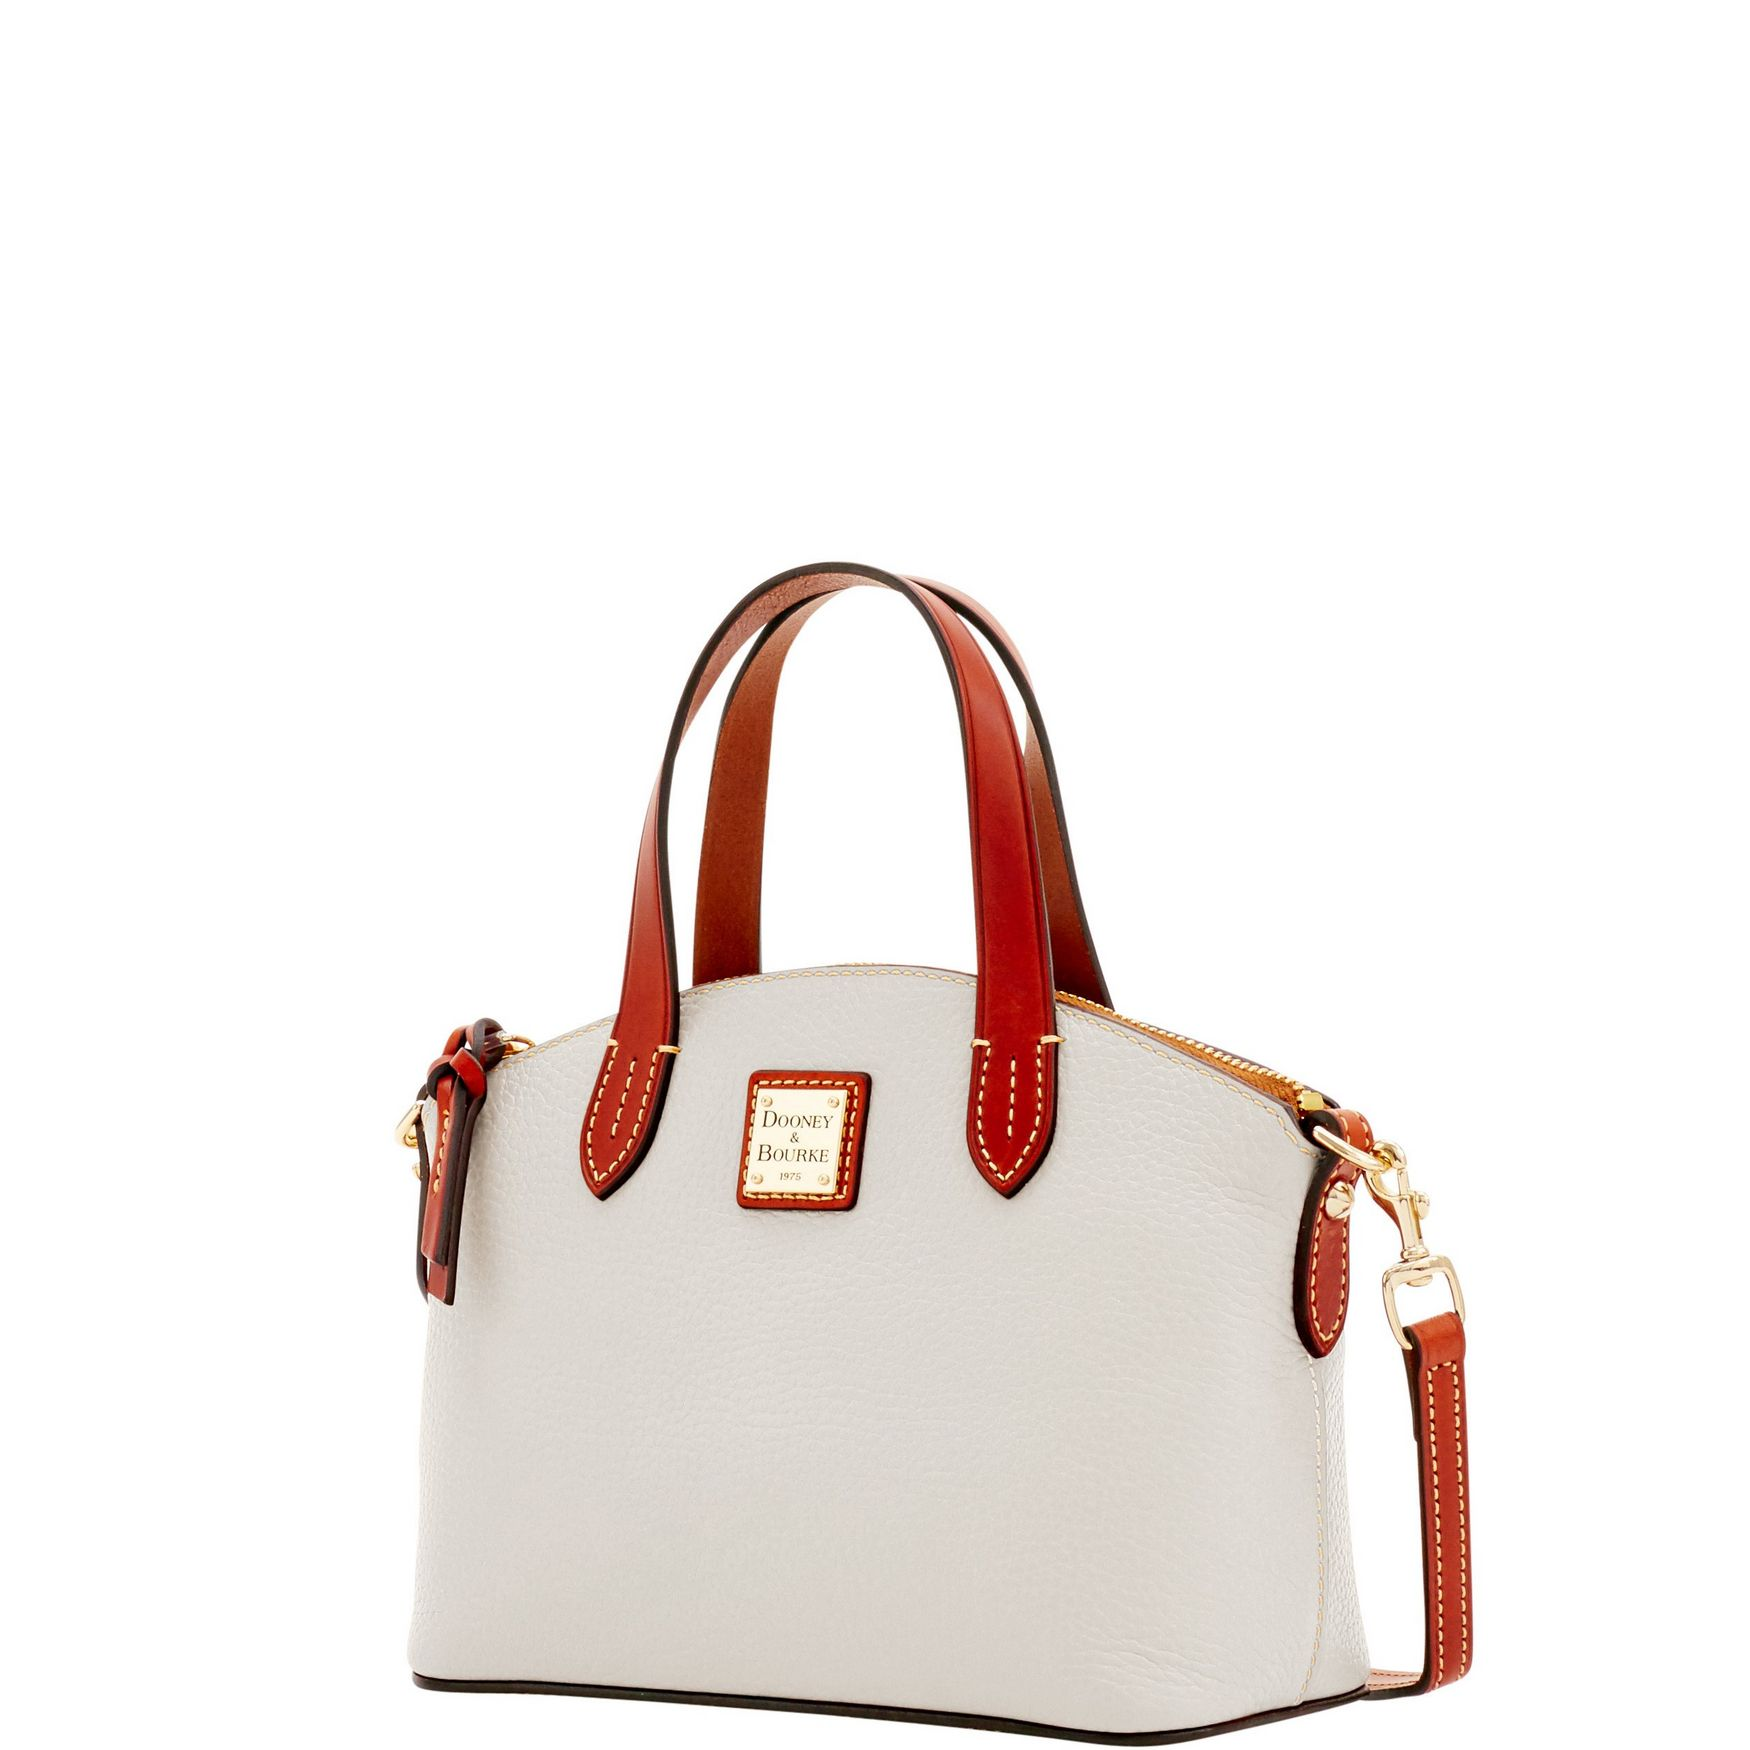 Dooney-amp-Bourke-Pebble-Grain-Ruby-Top-Handle-Bag thumbnail 28